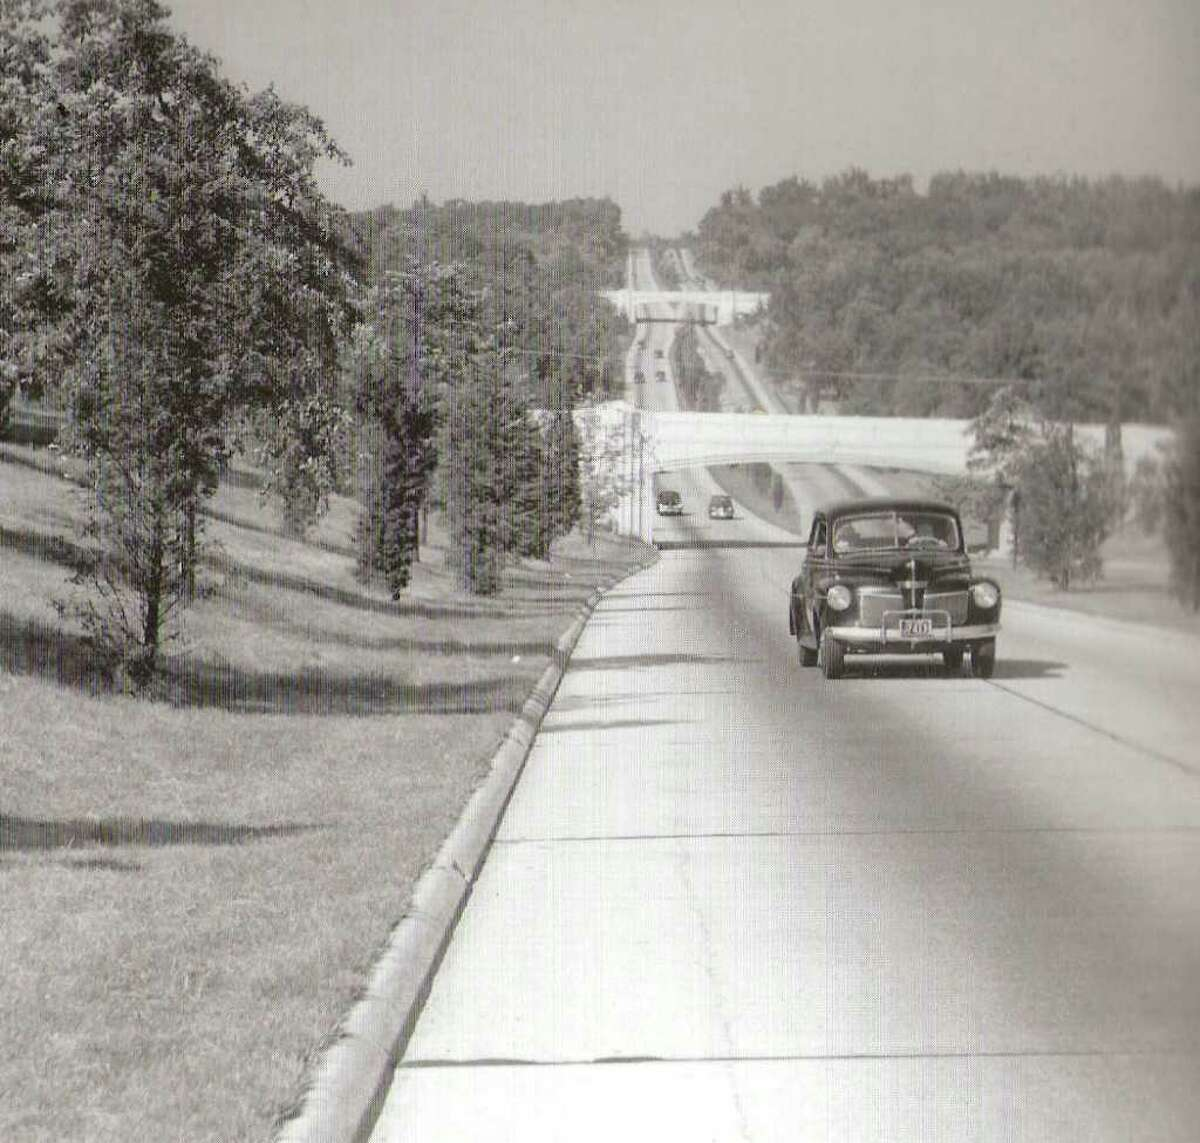 Historic photo of the Merritt from the Connecticut State Library; they also appeared in *Historic Photos of Connecticut*, edited by Sam L. Rothman, Turner Publishing Co. It shows traffic (?) on the Greenwich to Norwalk segment soon after opening day in June, 1938.